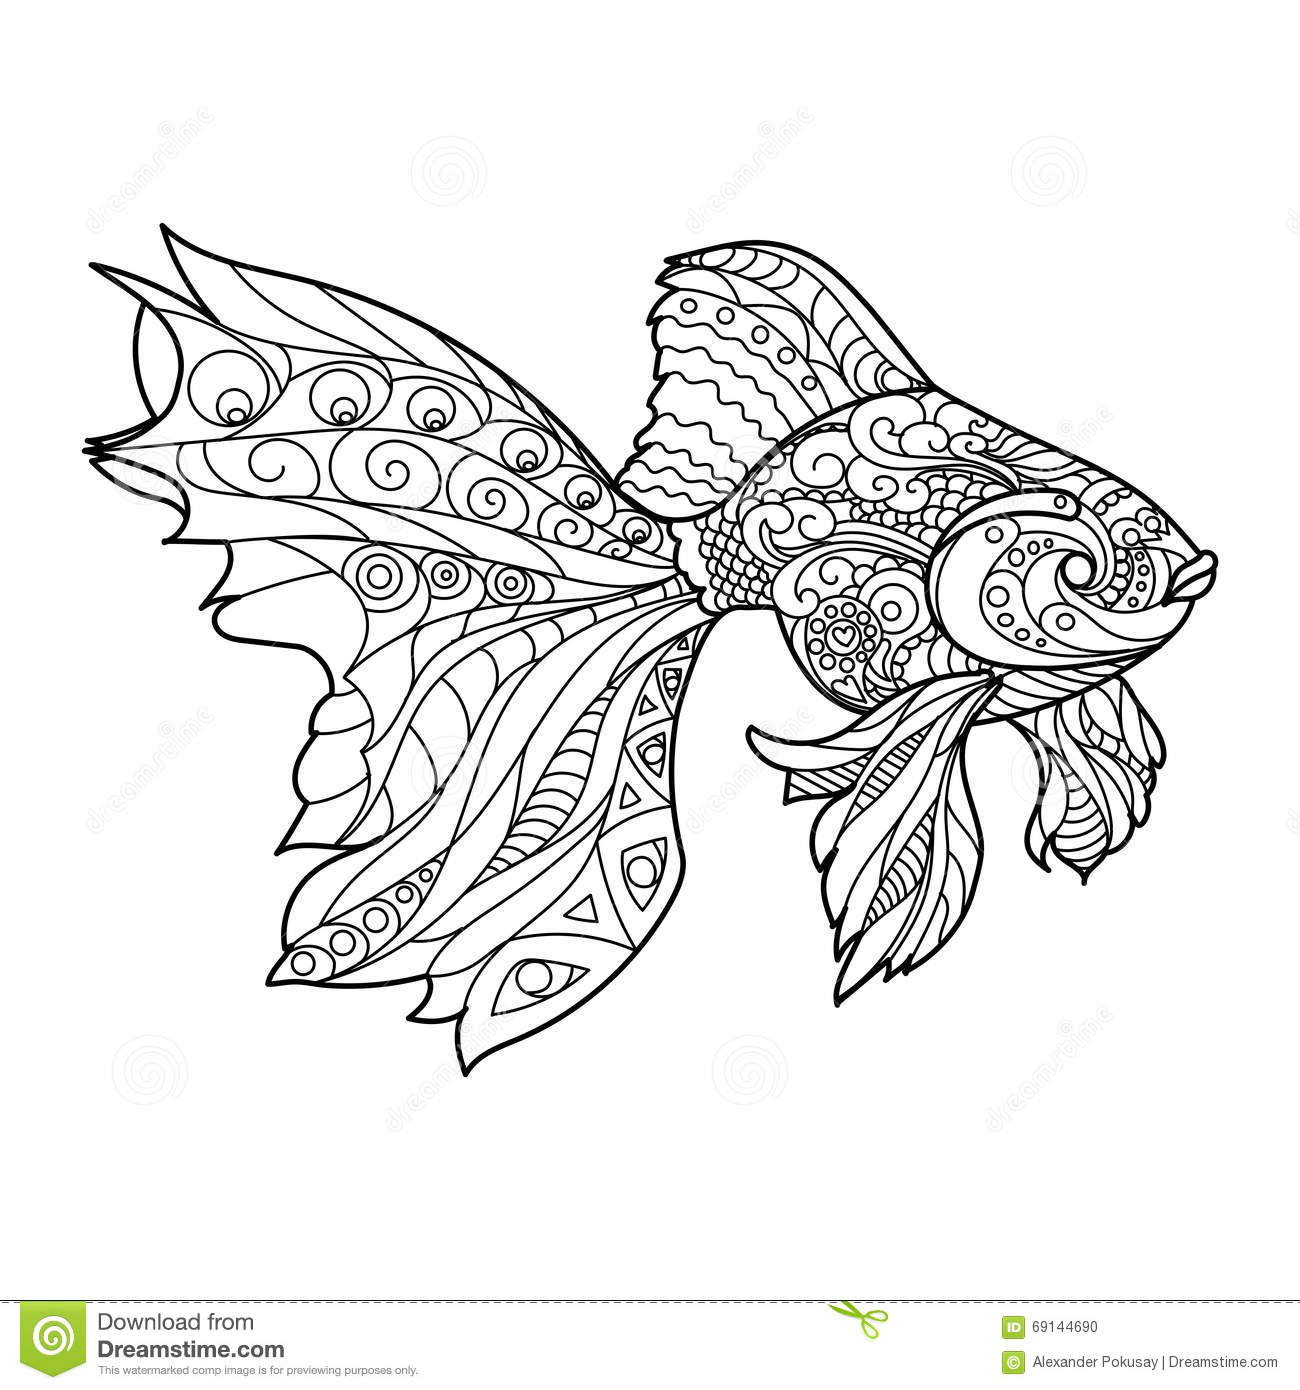 royalty free vector download gold fish coloring book for adults - Fish Coloring Pages For Adults